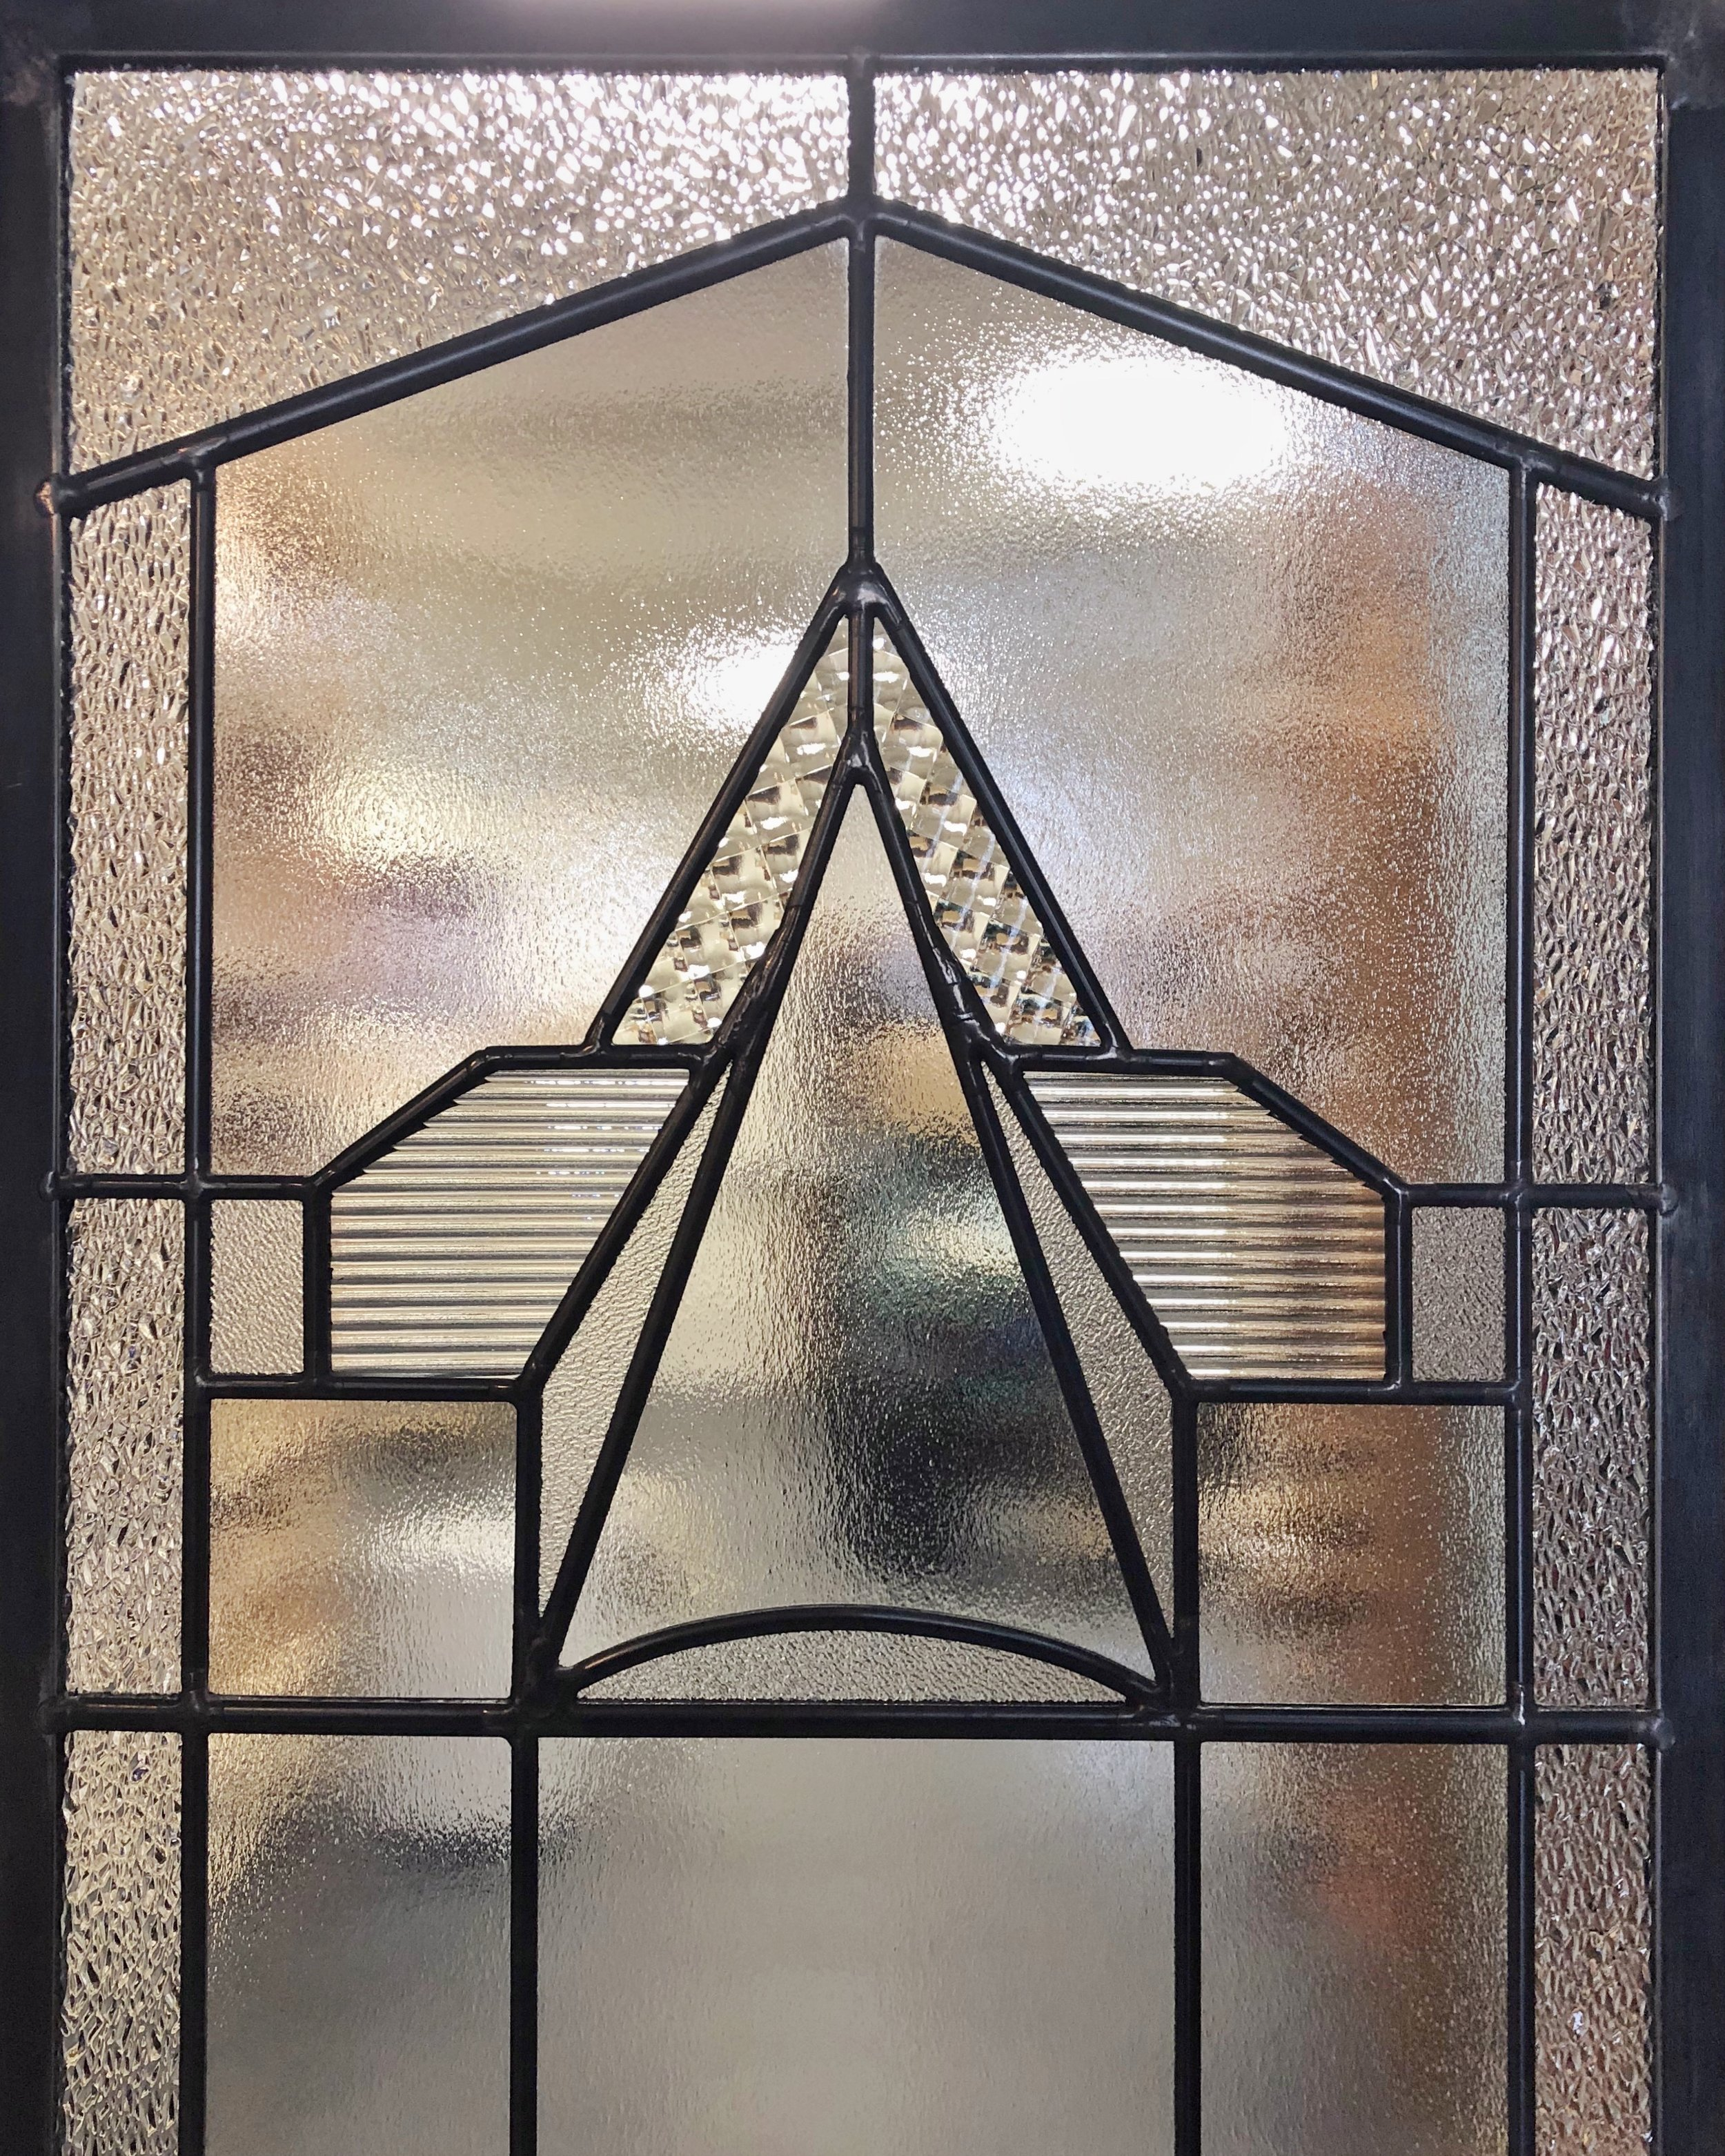 art deco leaded glass custom design palo alto california legacy glass studios high end homes privacy glass window 1920s style geometric stained glass satin reeded cross reed.jpg